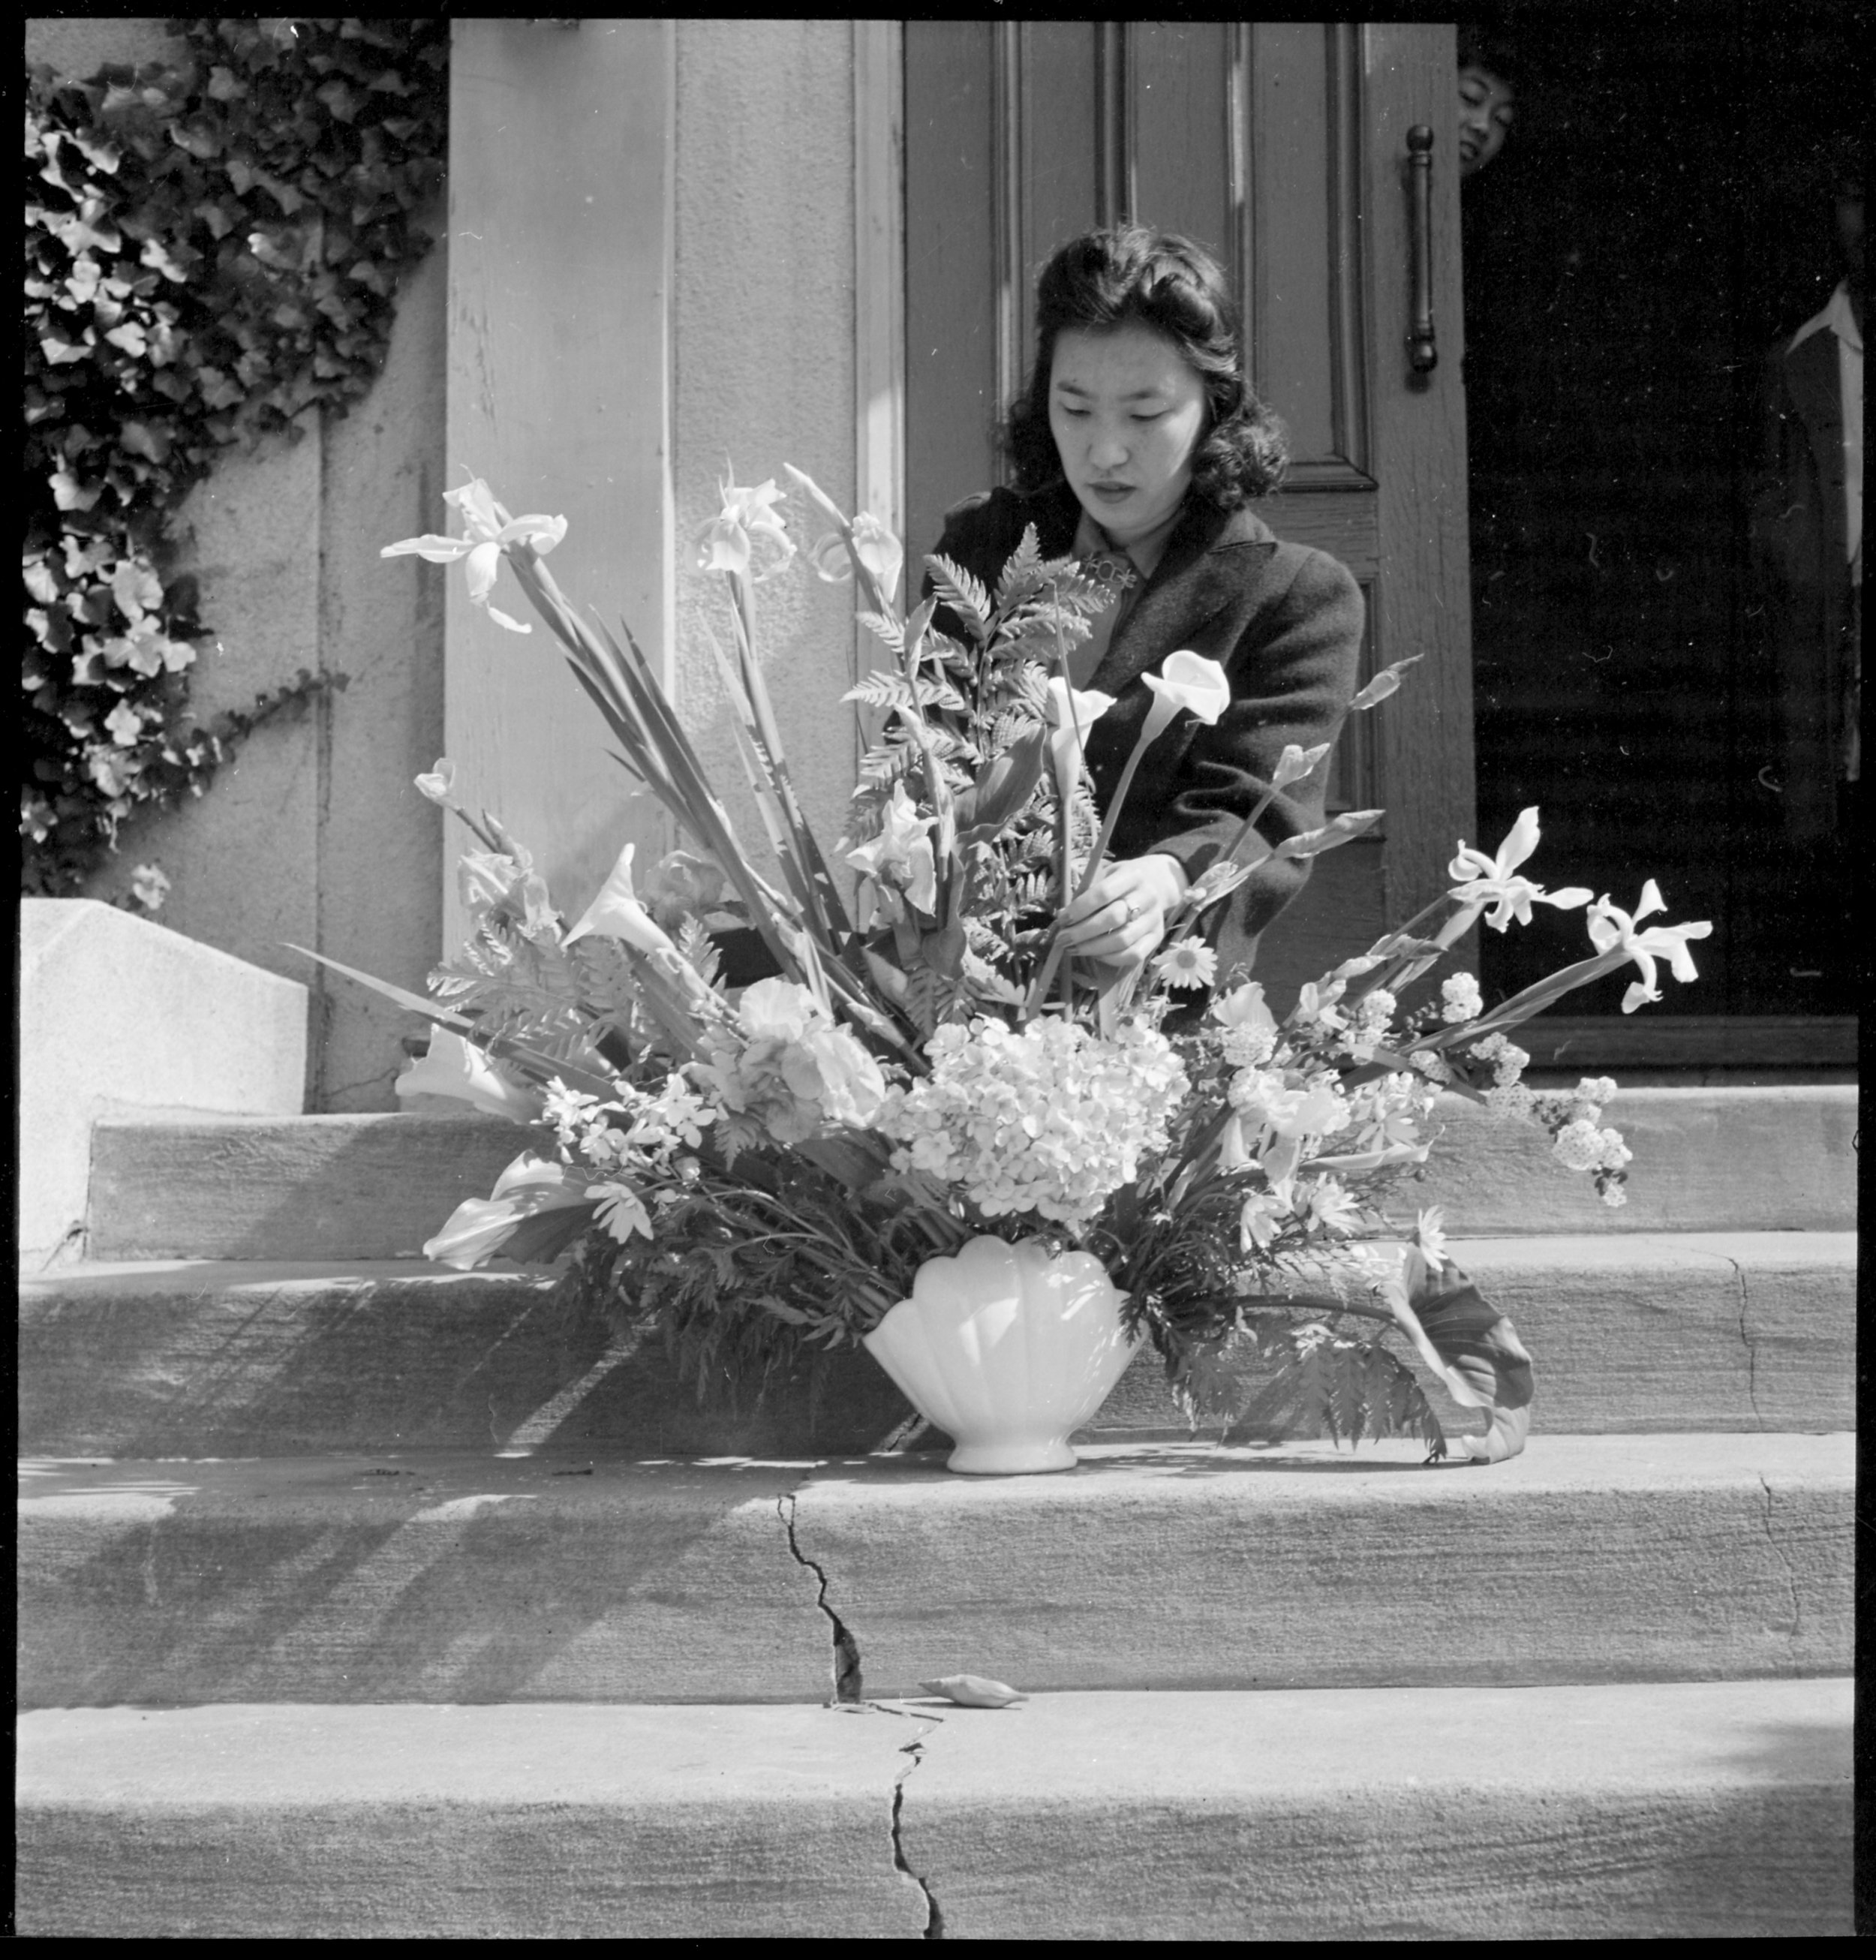 Oakland, California. Arranging flowers for altar on last day of service at Japanese Independent Congregational Church, prior to evacuation. Evacuees of Japanese ancestry will be housed at War Relocation Authority centers for the duration.